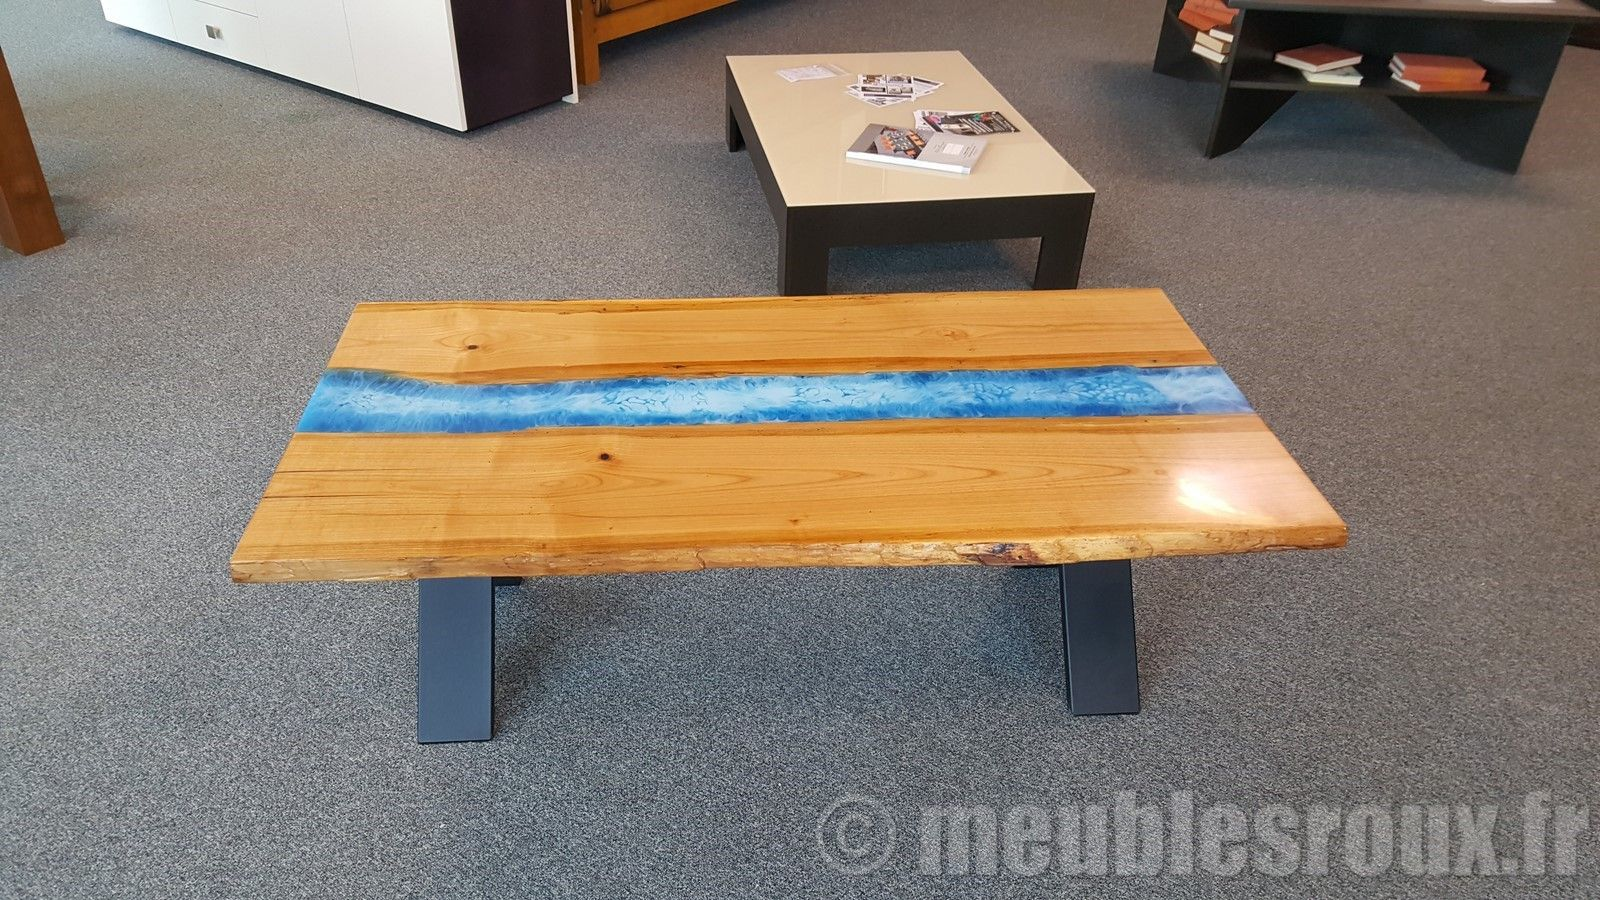 Table Basse En Merisier Et Resine Epoxy Table Basse Design Table Basse En Merisier Table Basse